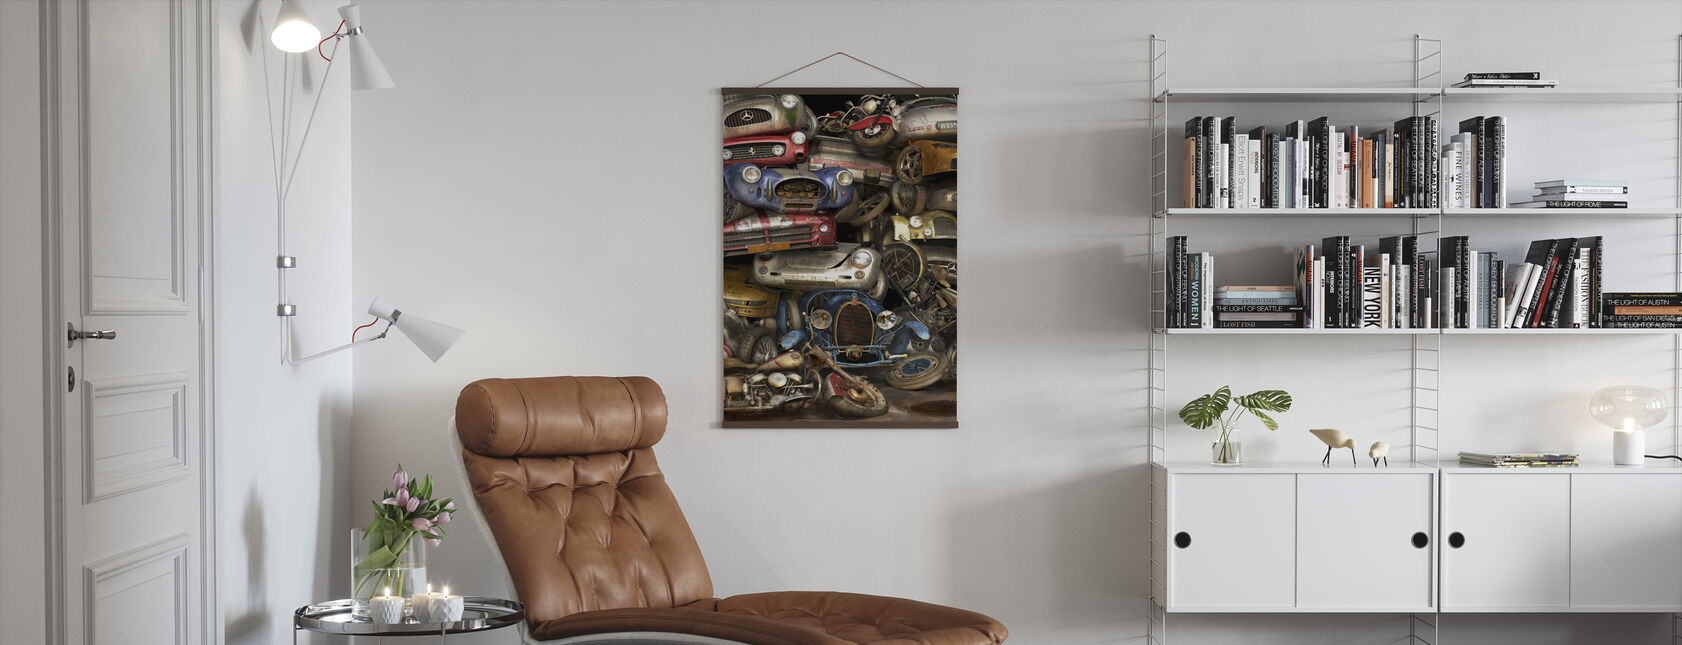 Recycling - Poster - Living Room